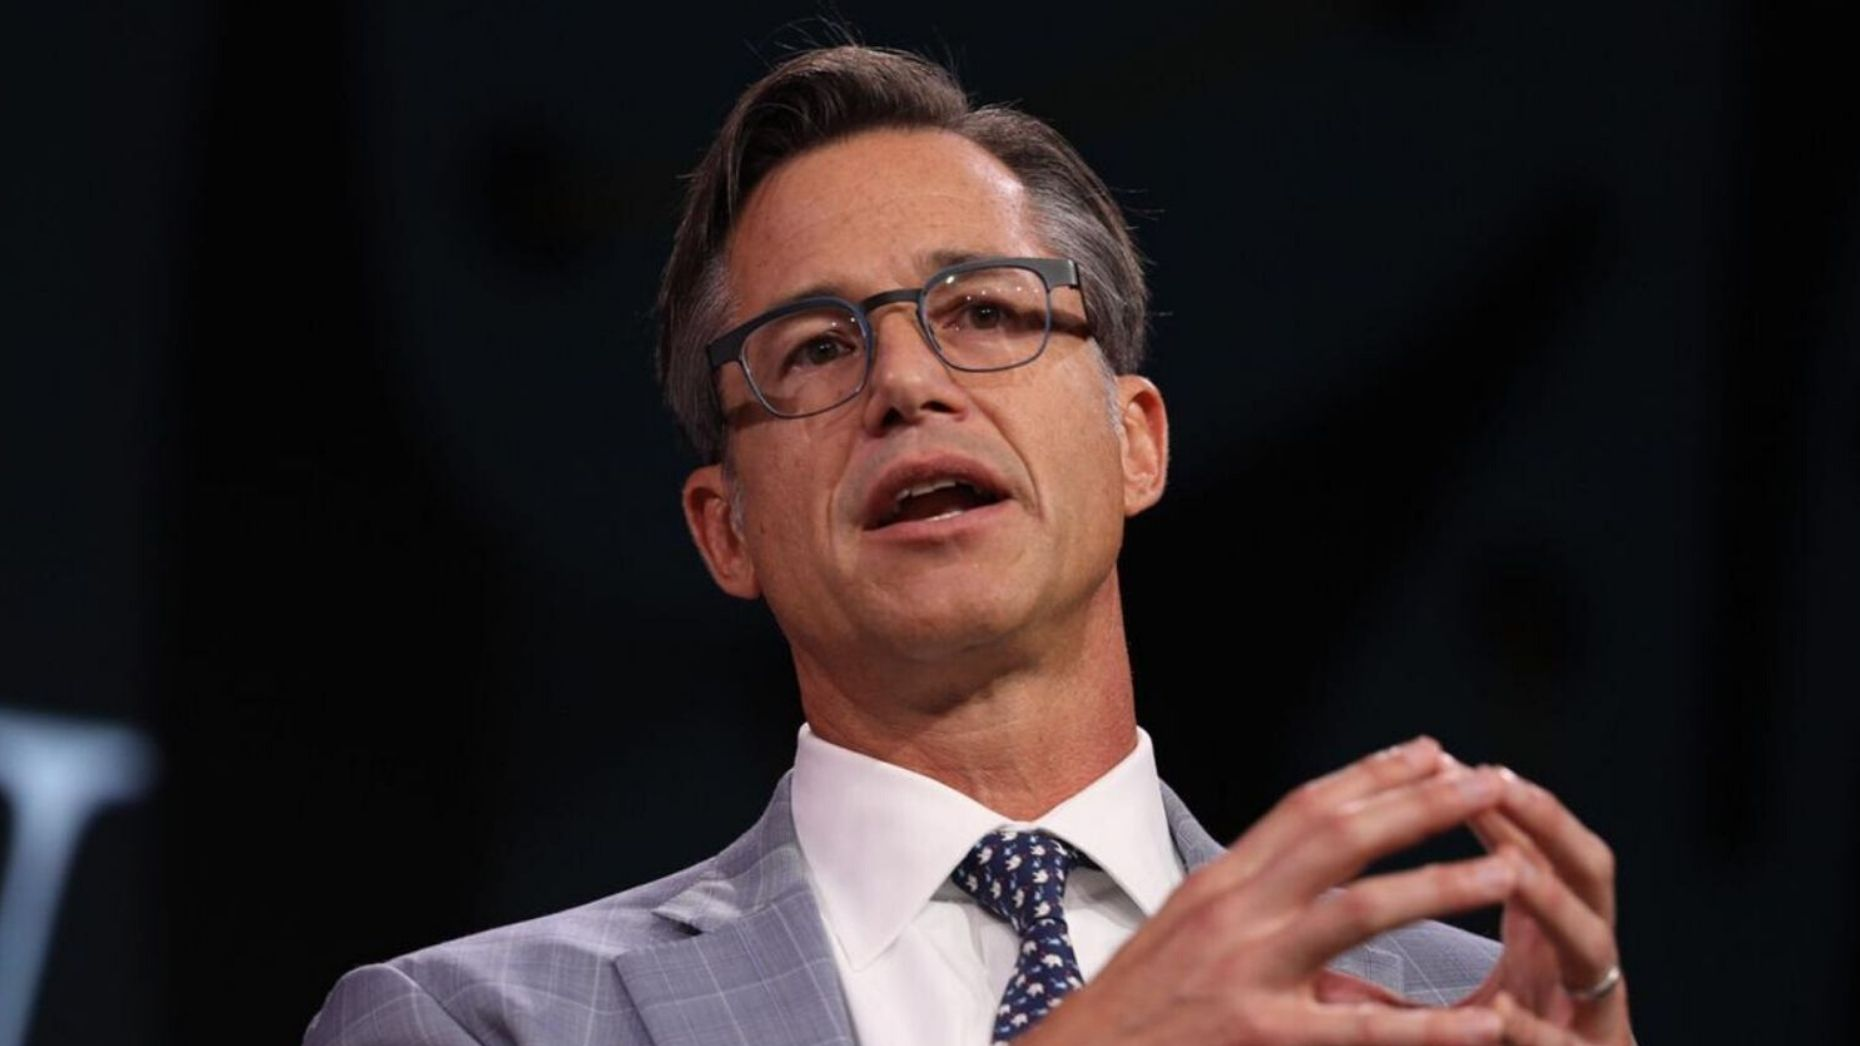 Zillow CEO Rich Barton is still the most 'powerful' person in real estate